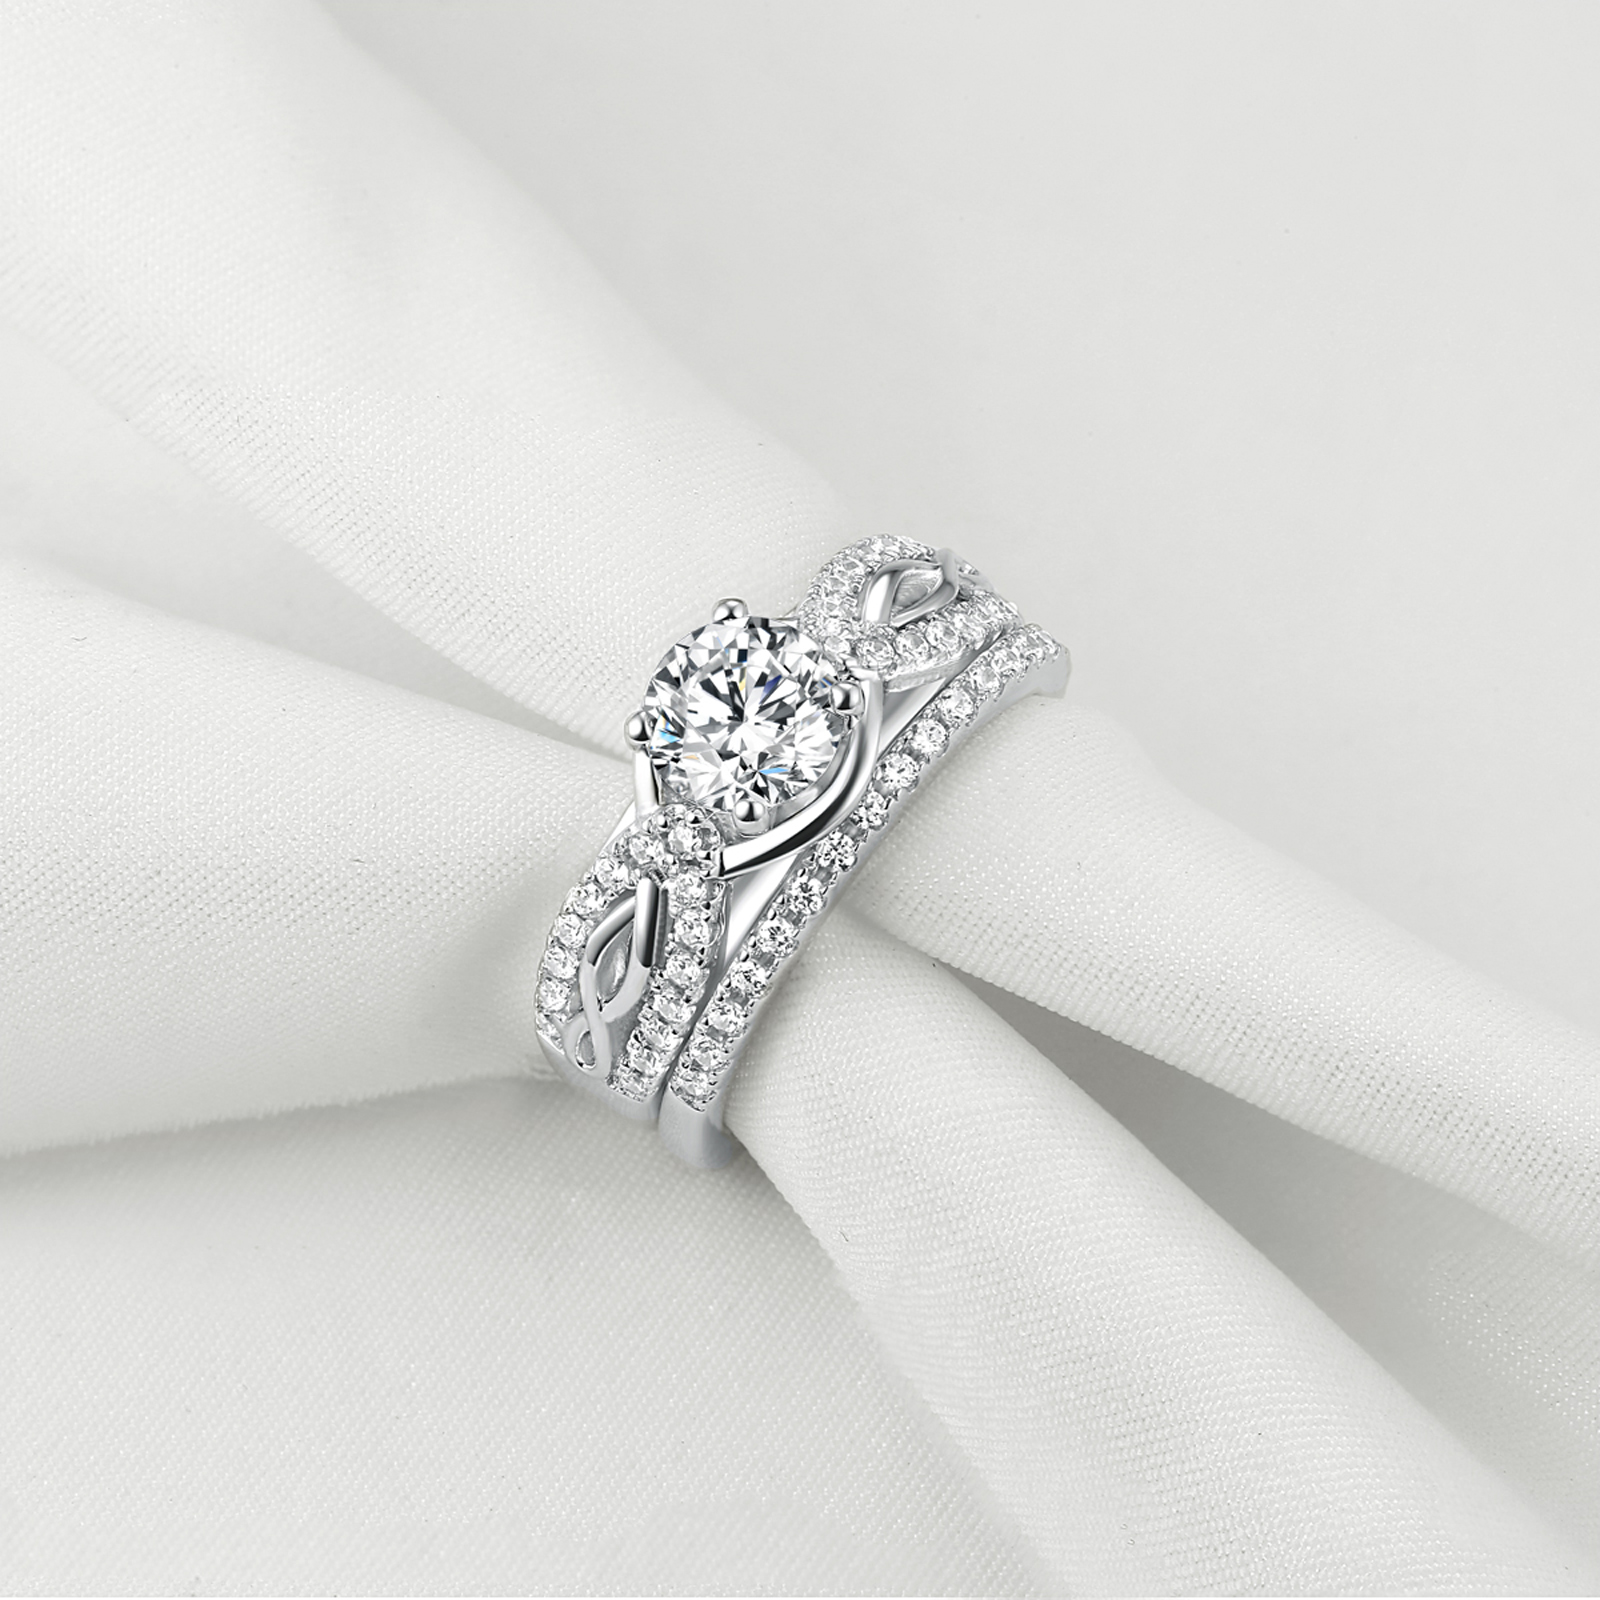 Lovely Bridal Round Cut AAA CZ 925 Sterling Silver Wedding Engagement Ring Set